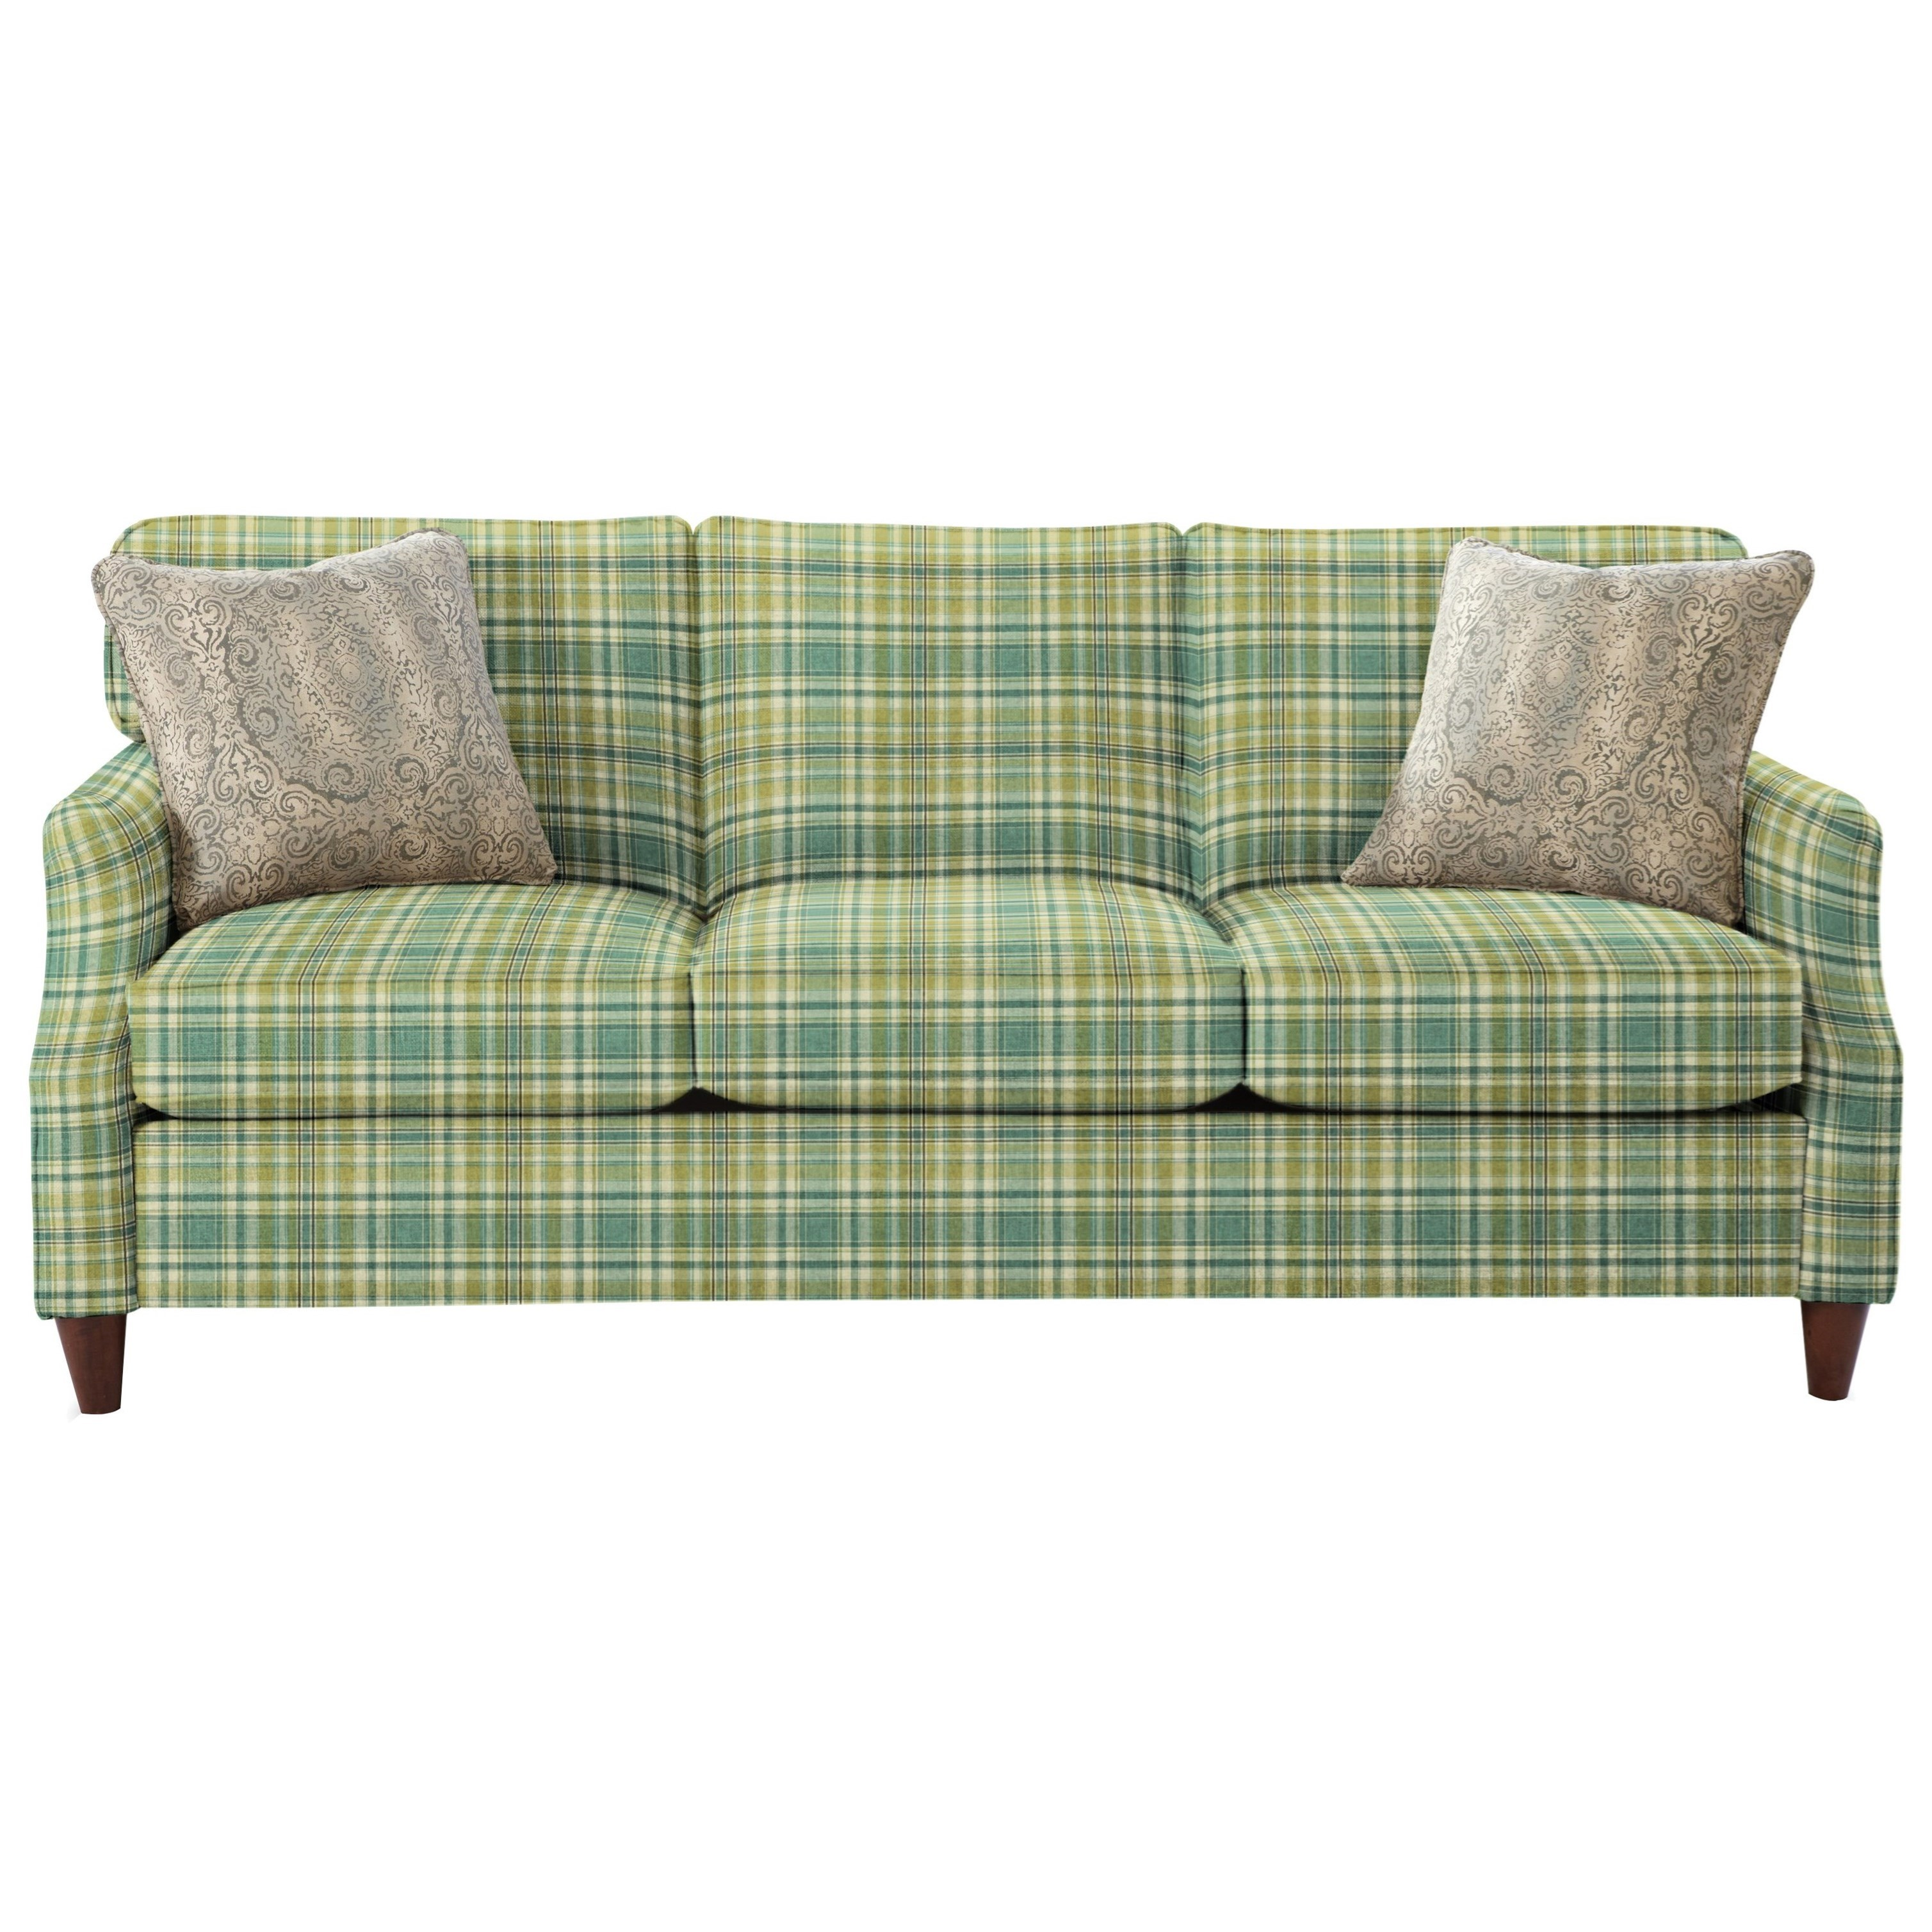 Craftmaster 7364 Sofa - Item Number: 736450-ABERNATHY-21